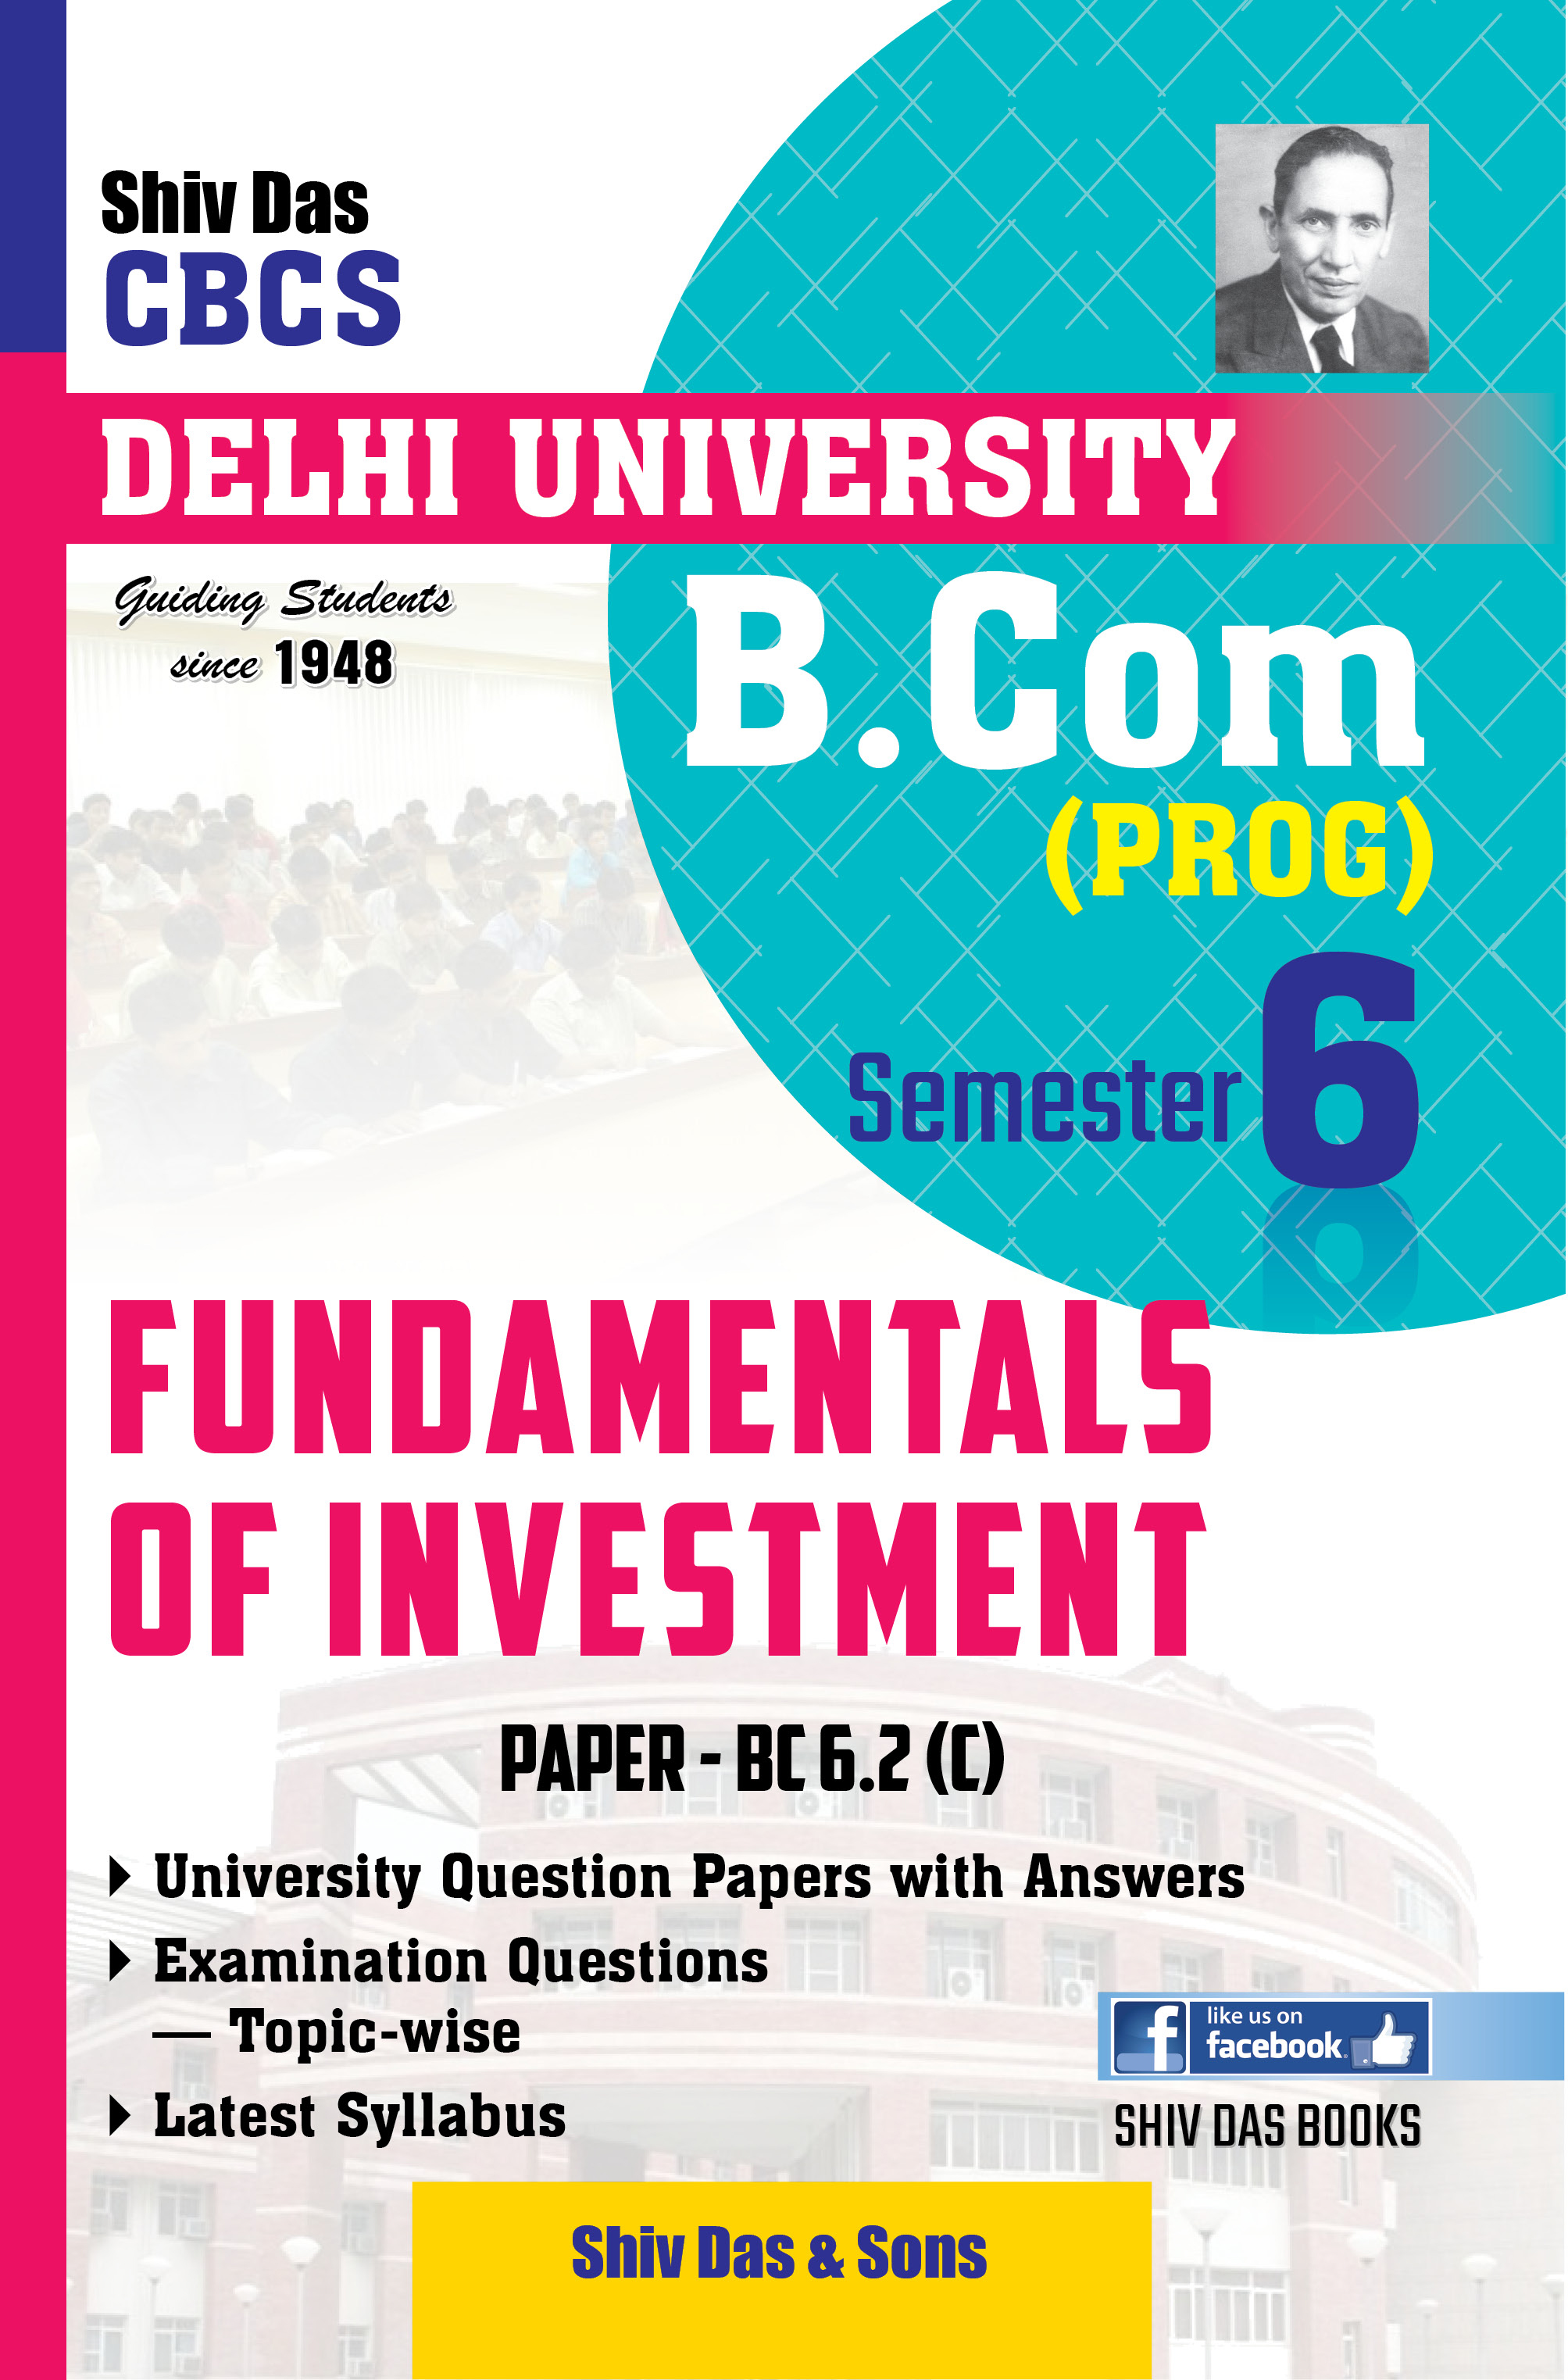 Fundamentals of Investment for B.Com Prog Semester-6 for Delhi University by Shiv Das